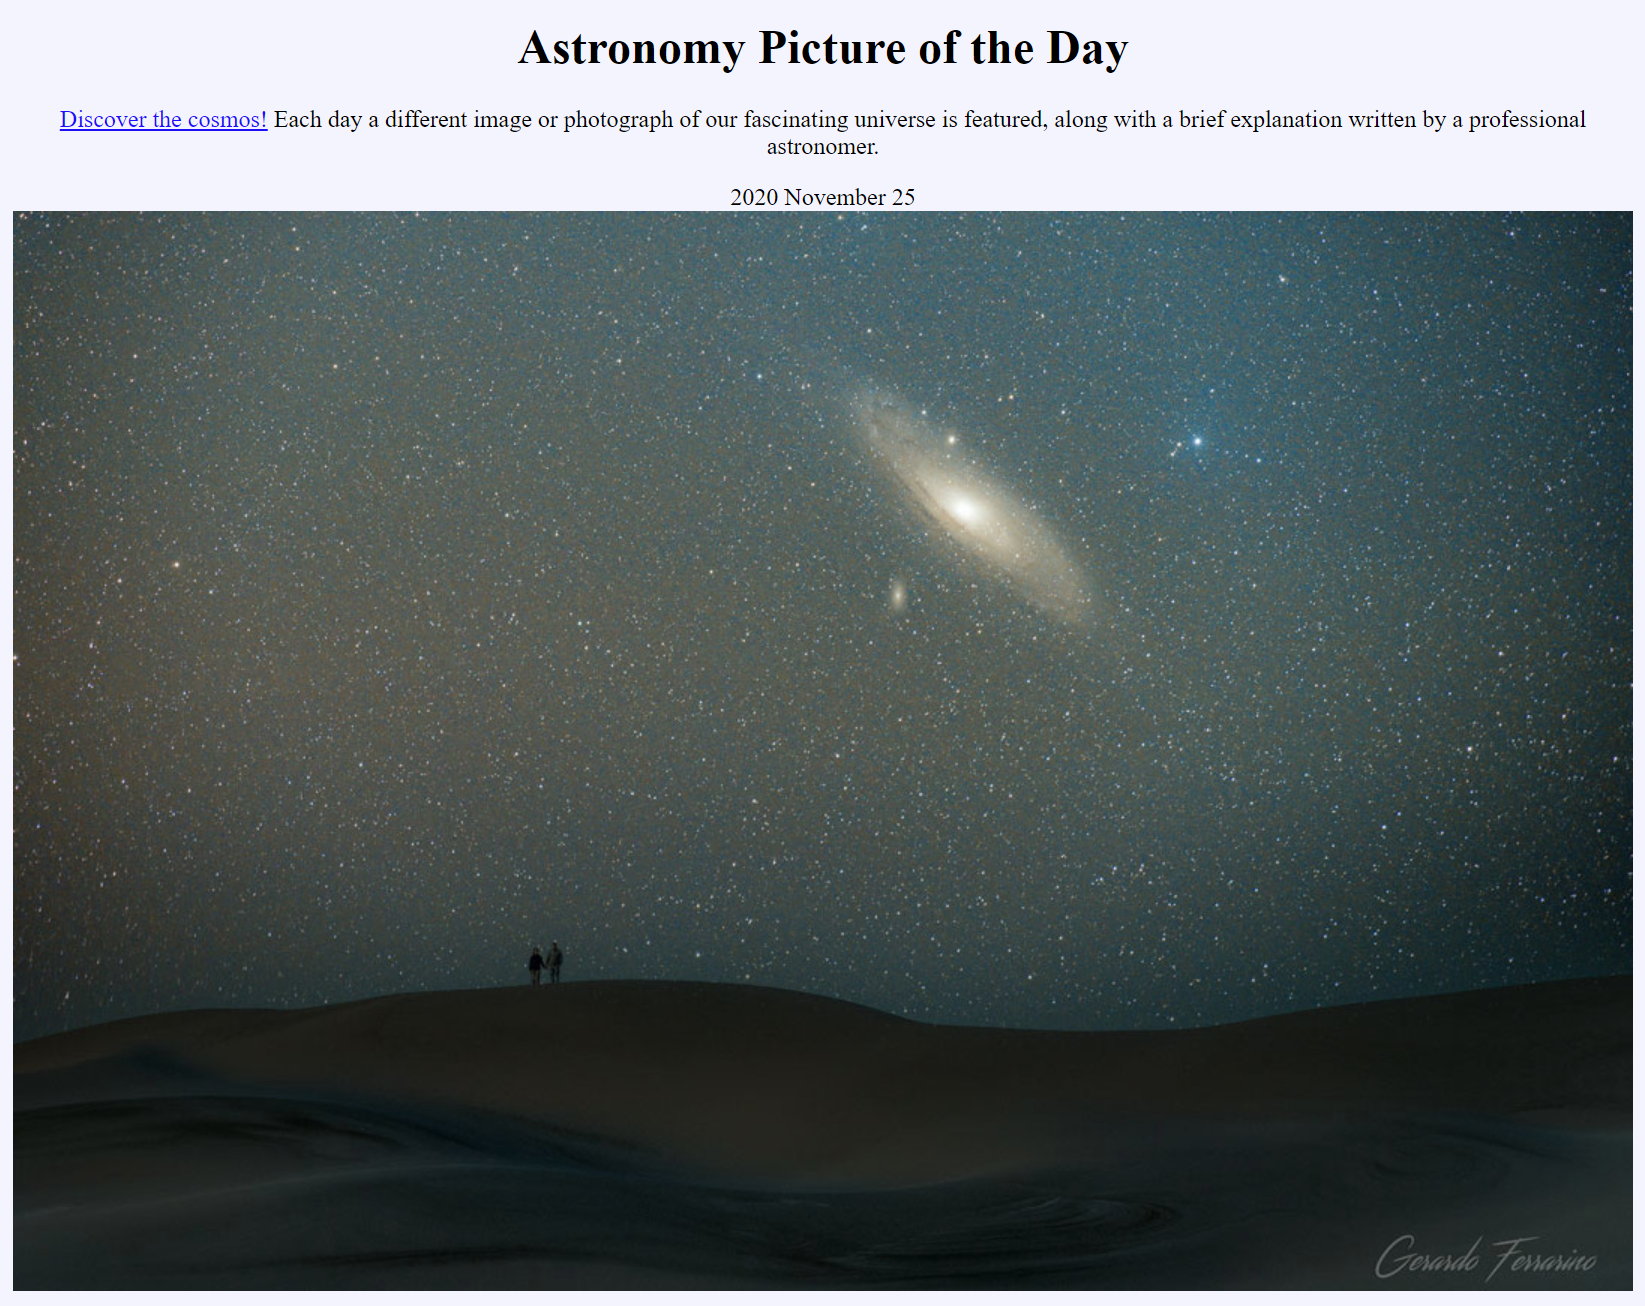 The Astronomy Picture of the Day site